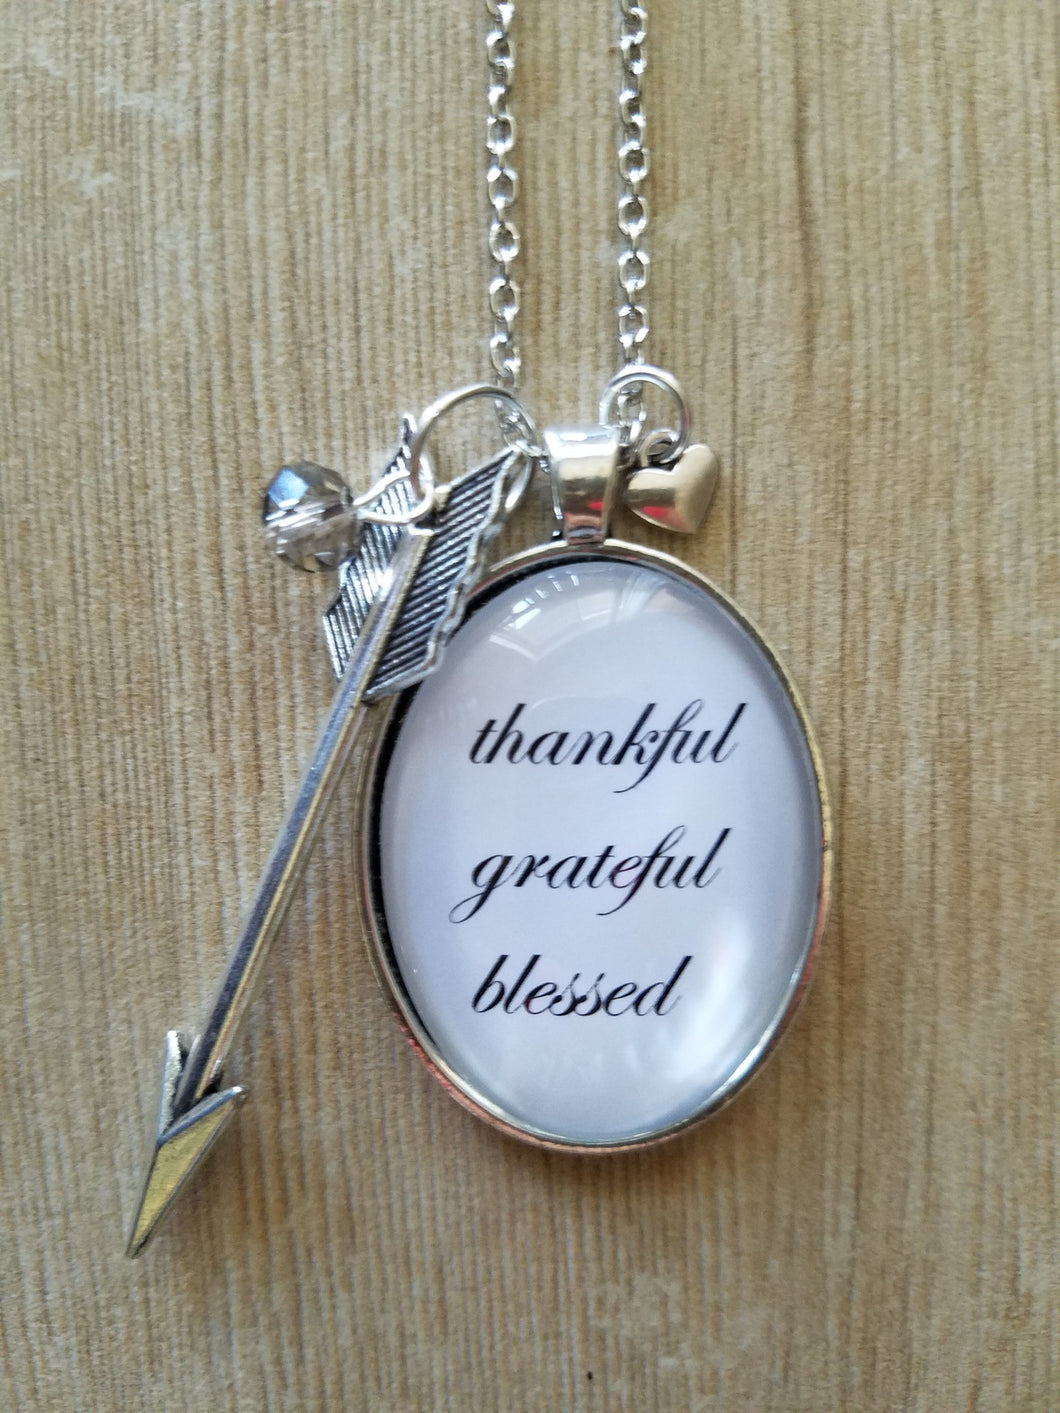 Thankful, Grateful, Blessed - Large Oval